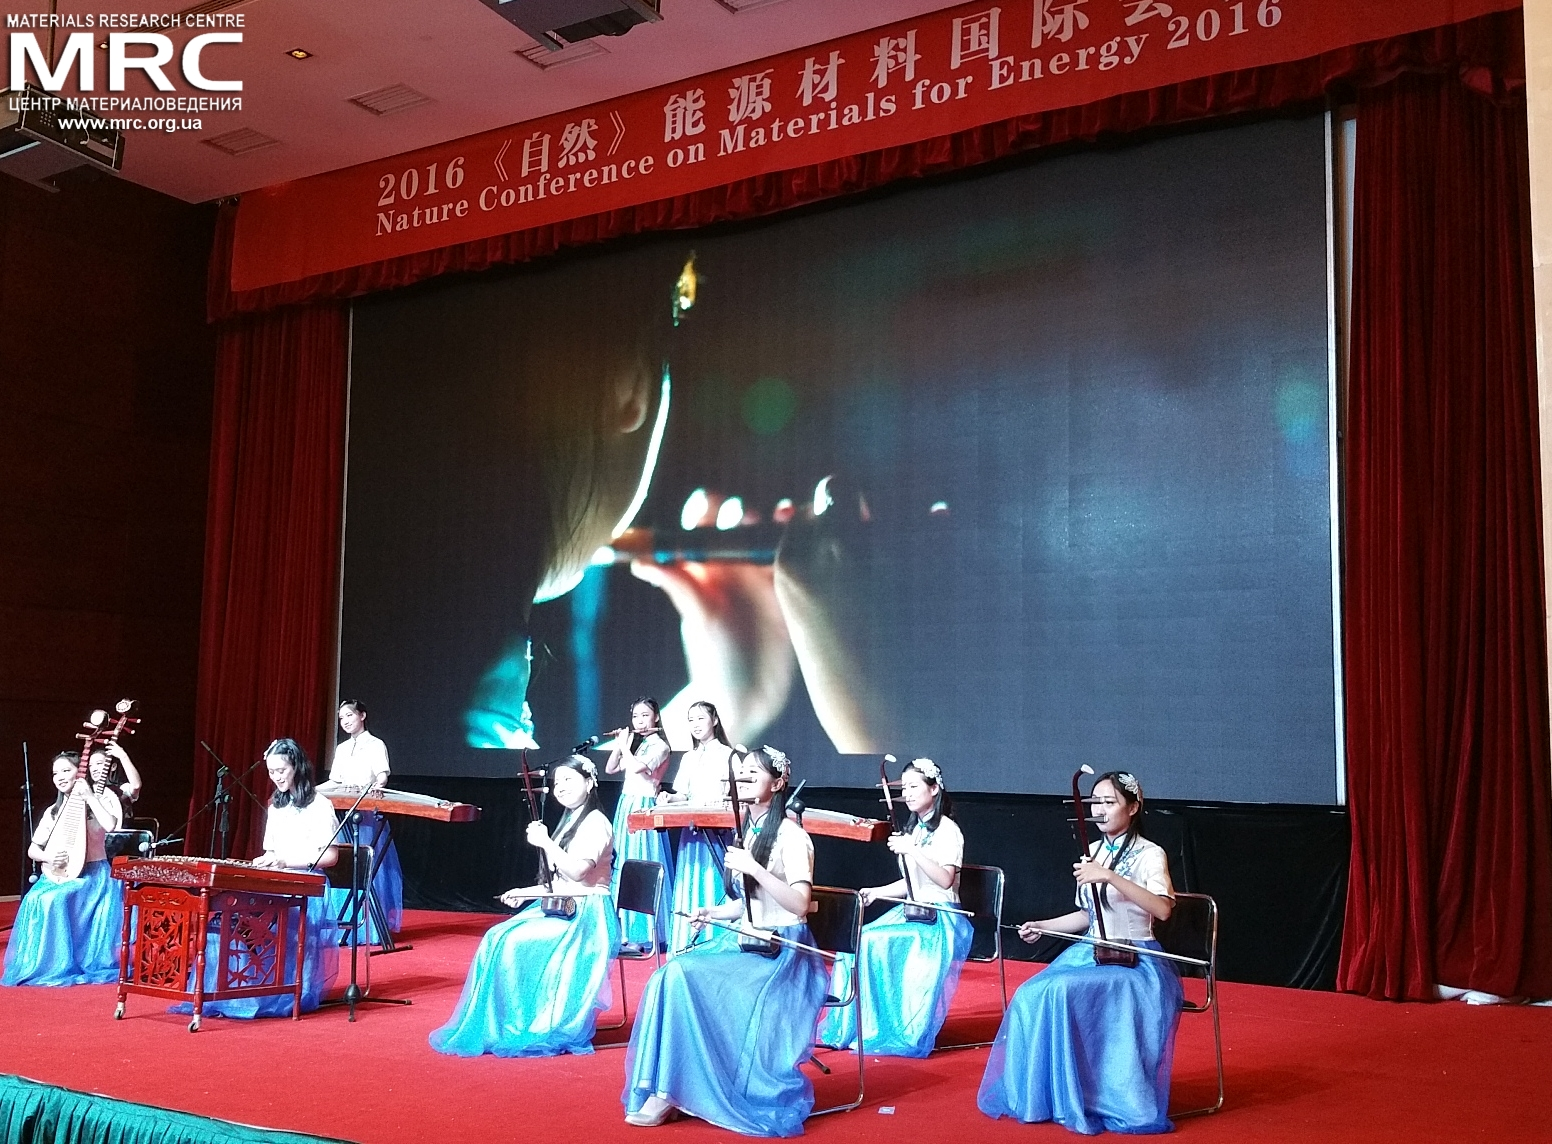 Entertainment at Closing ceremony, Nature Conference on Materials For Energy 2016